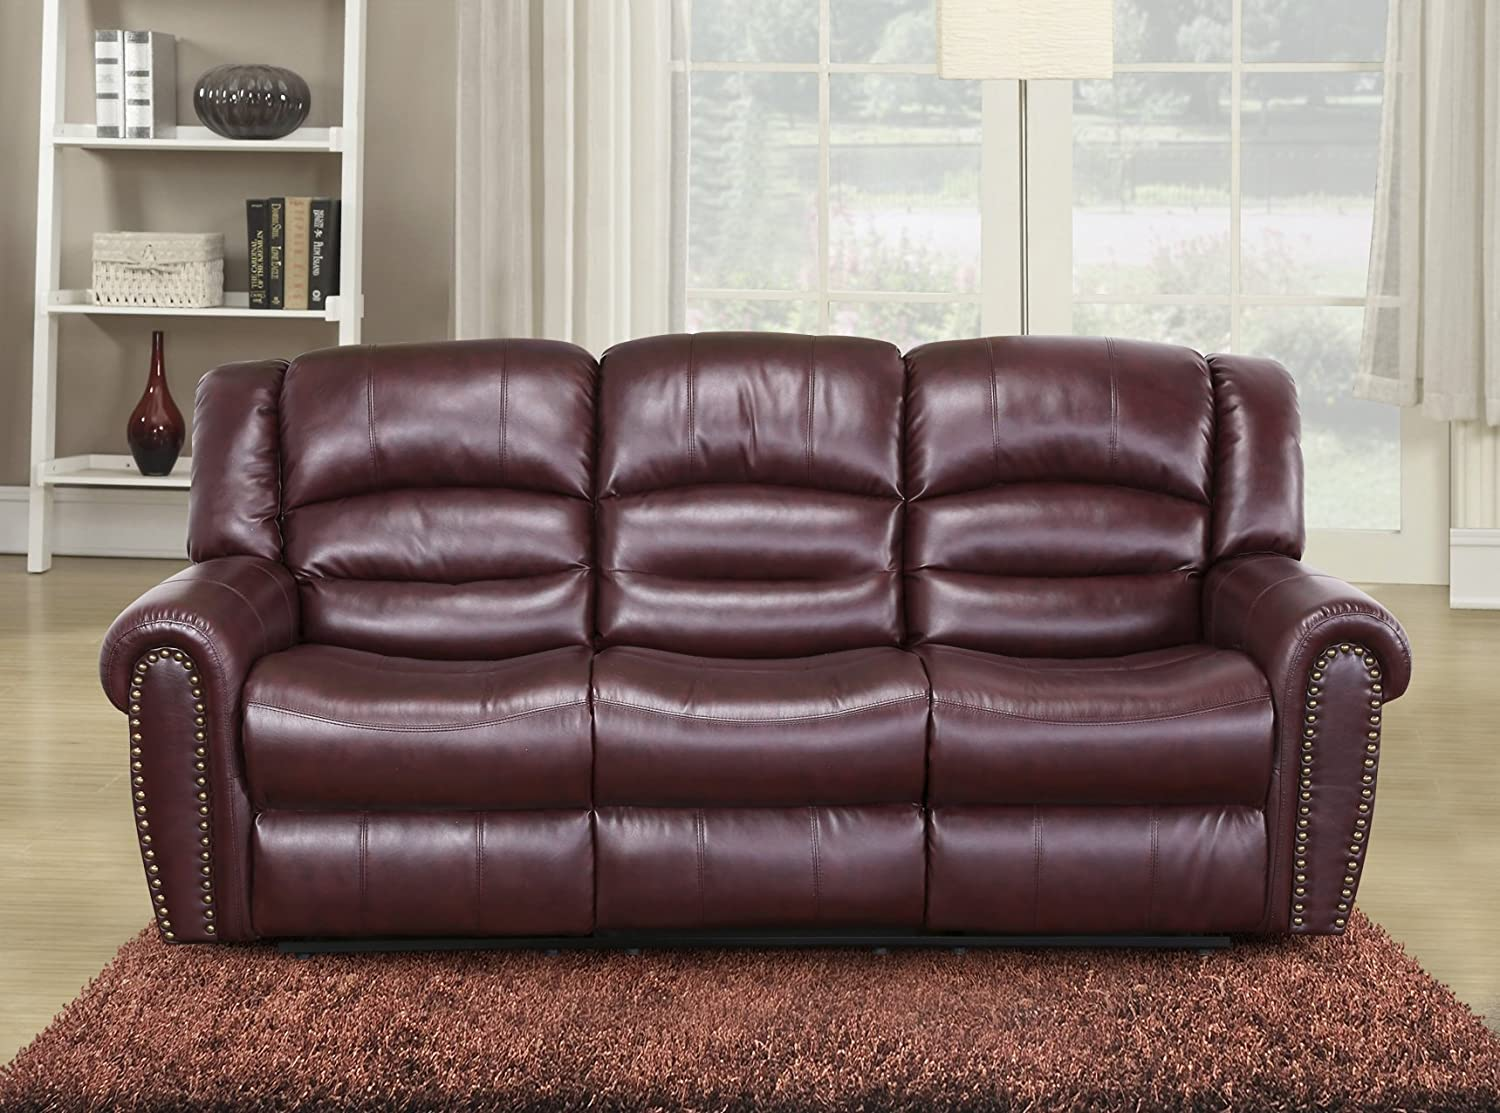 Beautiful Amazon.com: Meridian Furniture Nailhead Reclining Sofa, Burgundy: Kitchen U0026  Dining